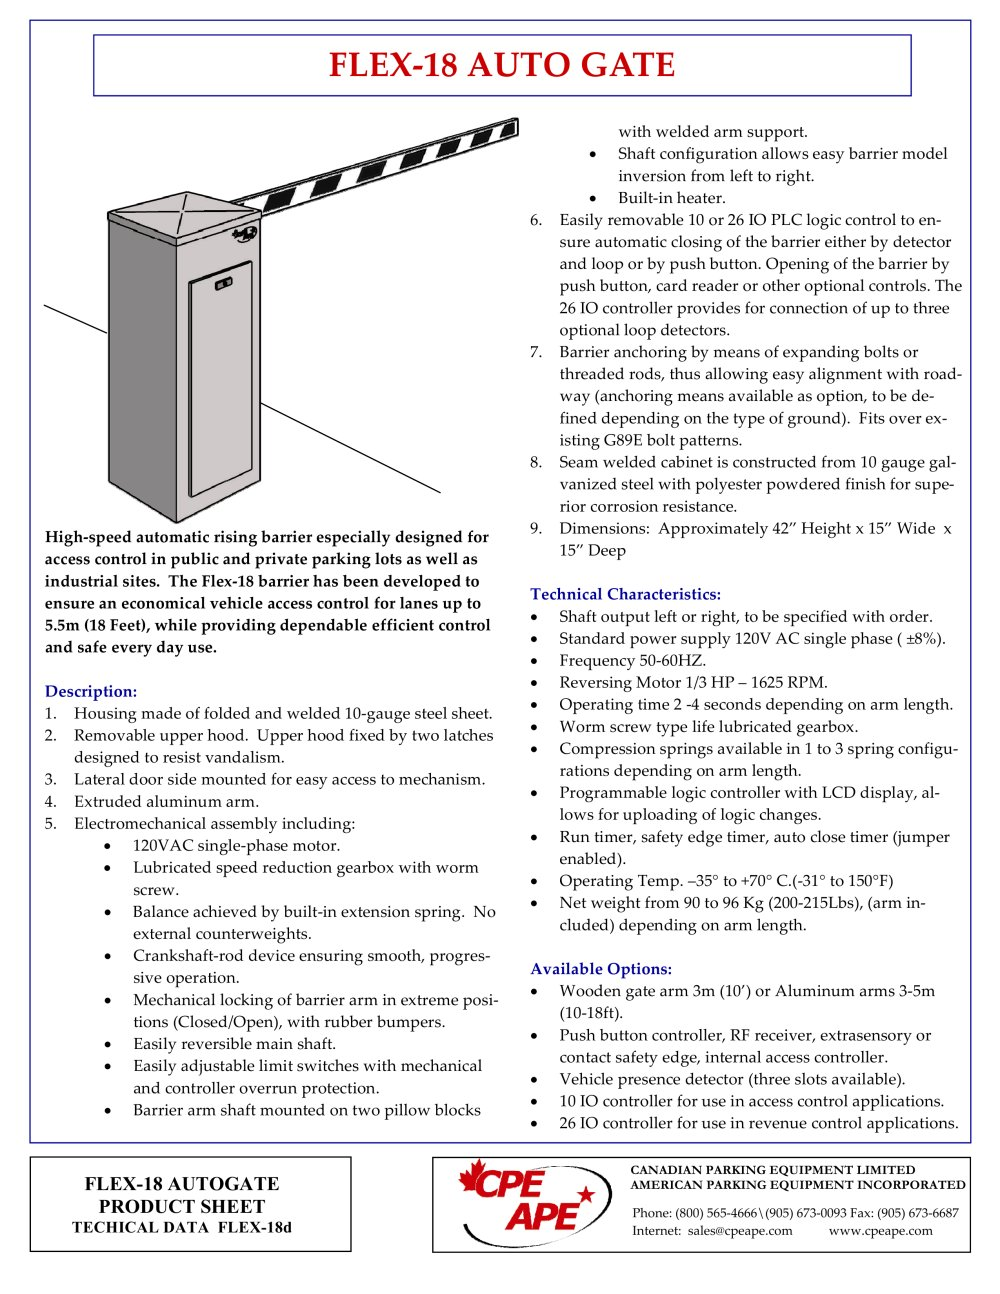 flex 18 barrier gate new g89 76016_1b flex 18 barrier gate (new g89) cpe ape pdf catalogue barrier gate wiring diagram at webbmarketing.co